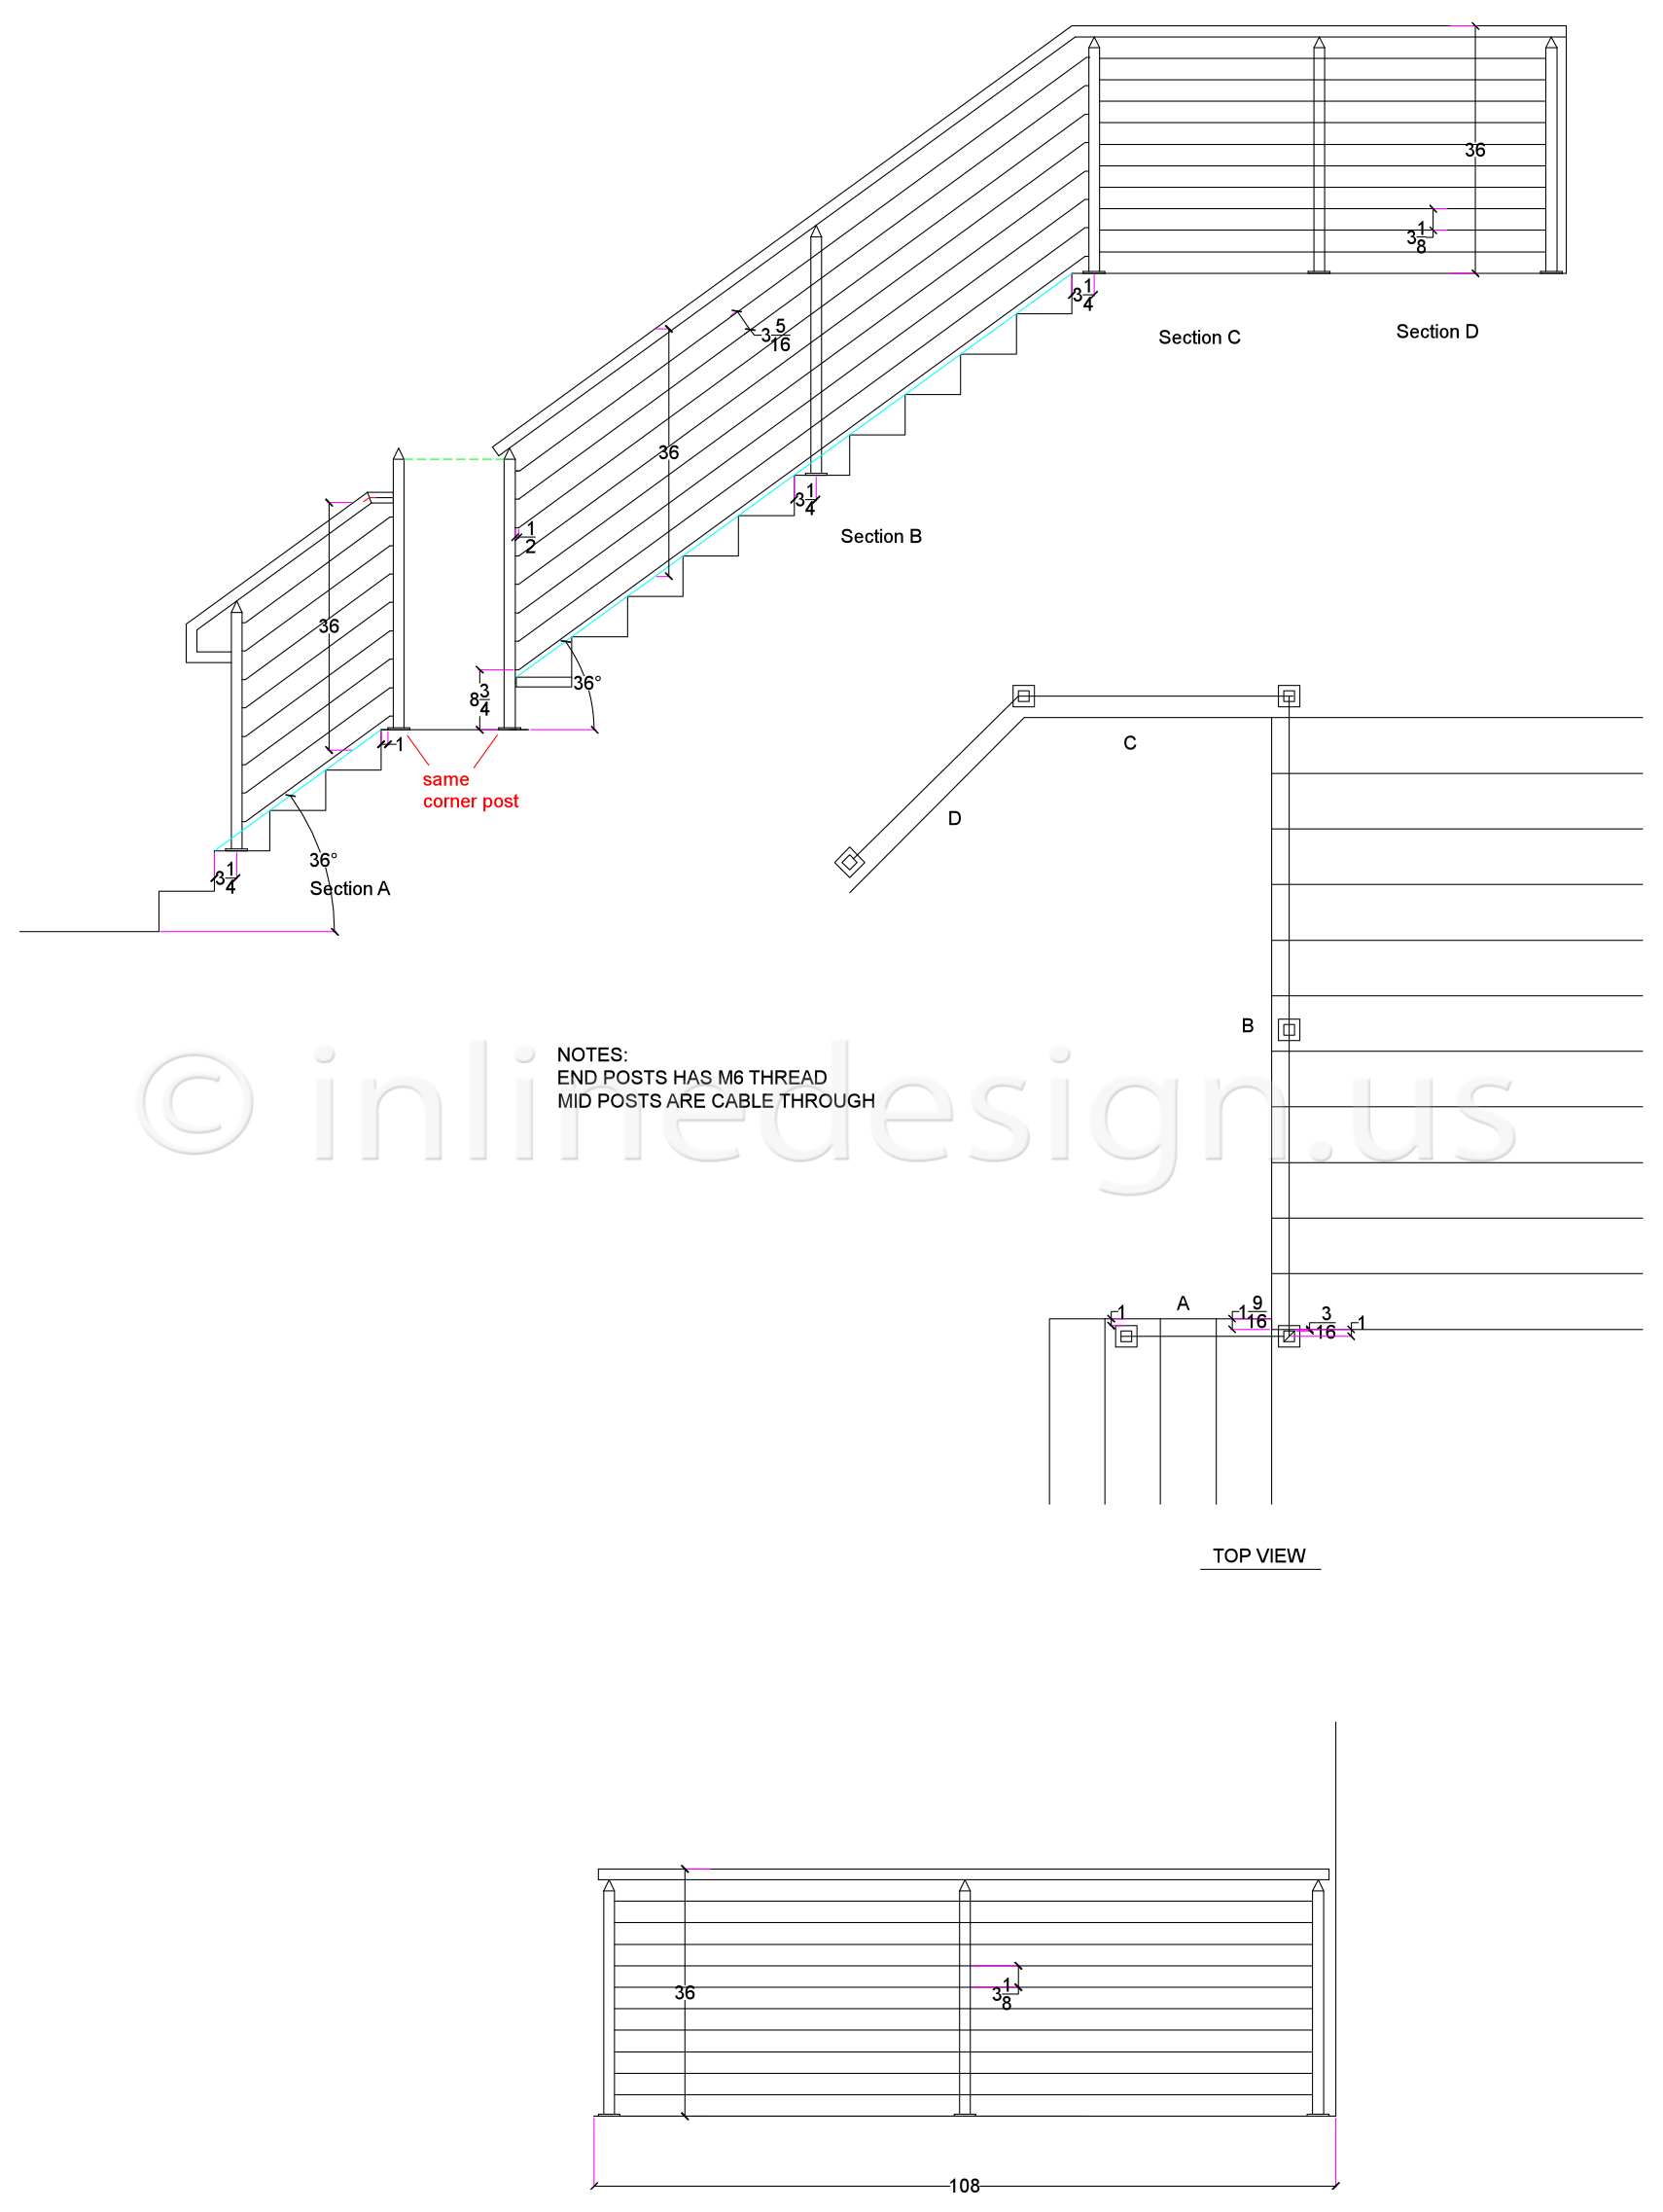 Stairs Section Drawing at GetDrawings com | Free for personal use